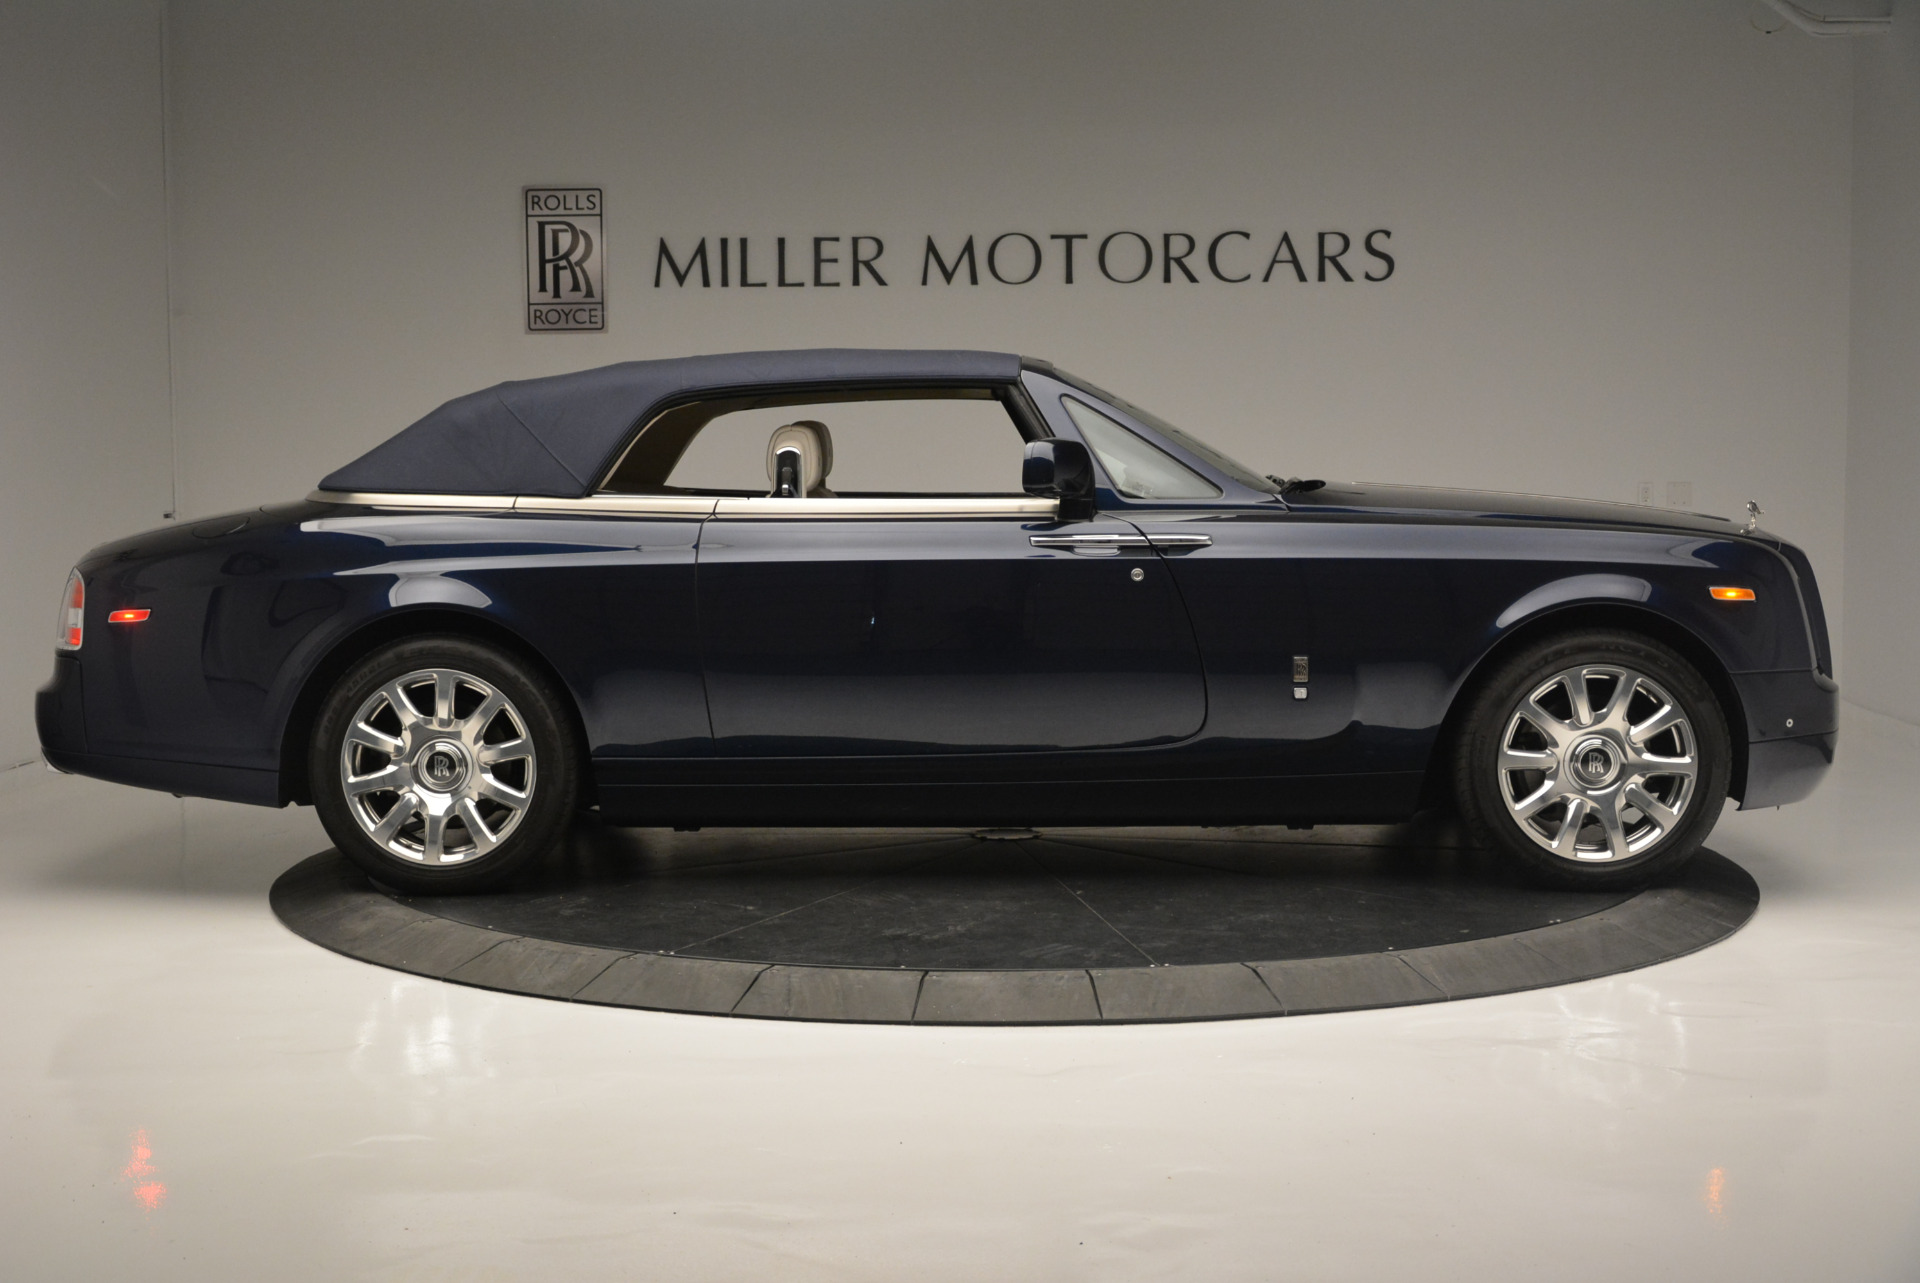 Used 2014 Rolls-Royce Phantom Drophead Coupe  For Sale In Westport, CT 2356_p14